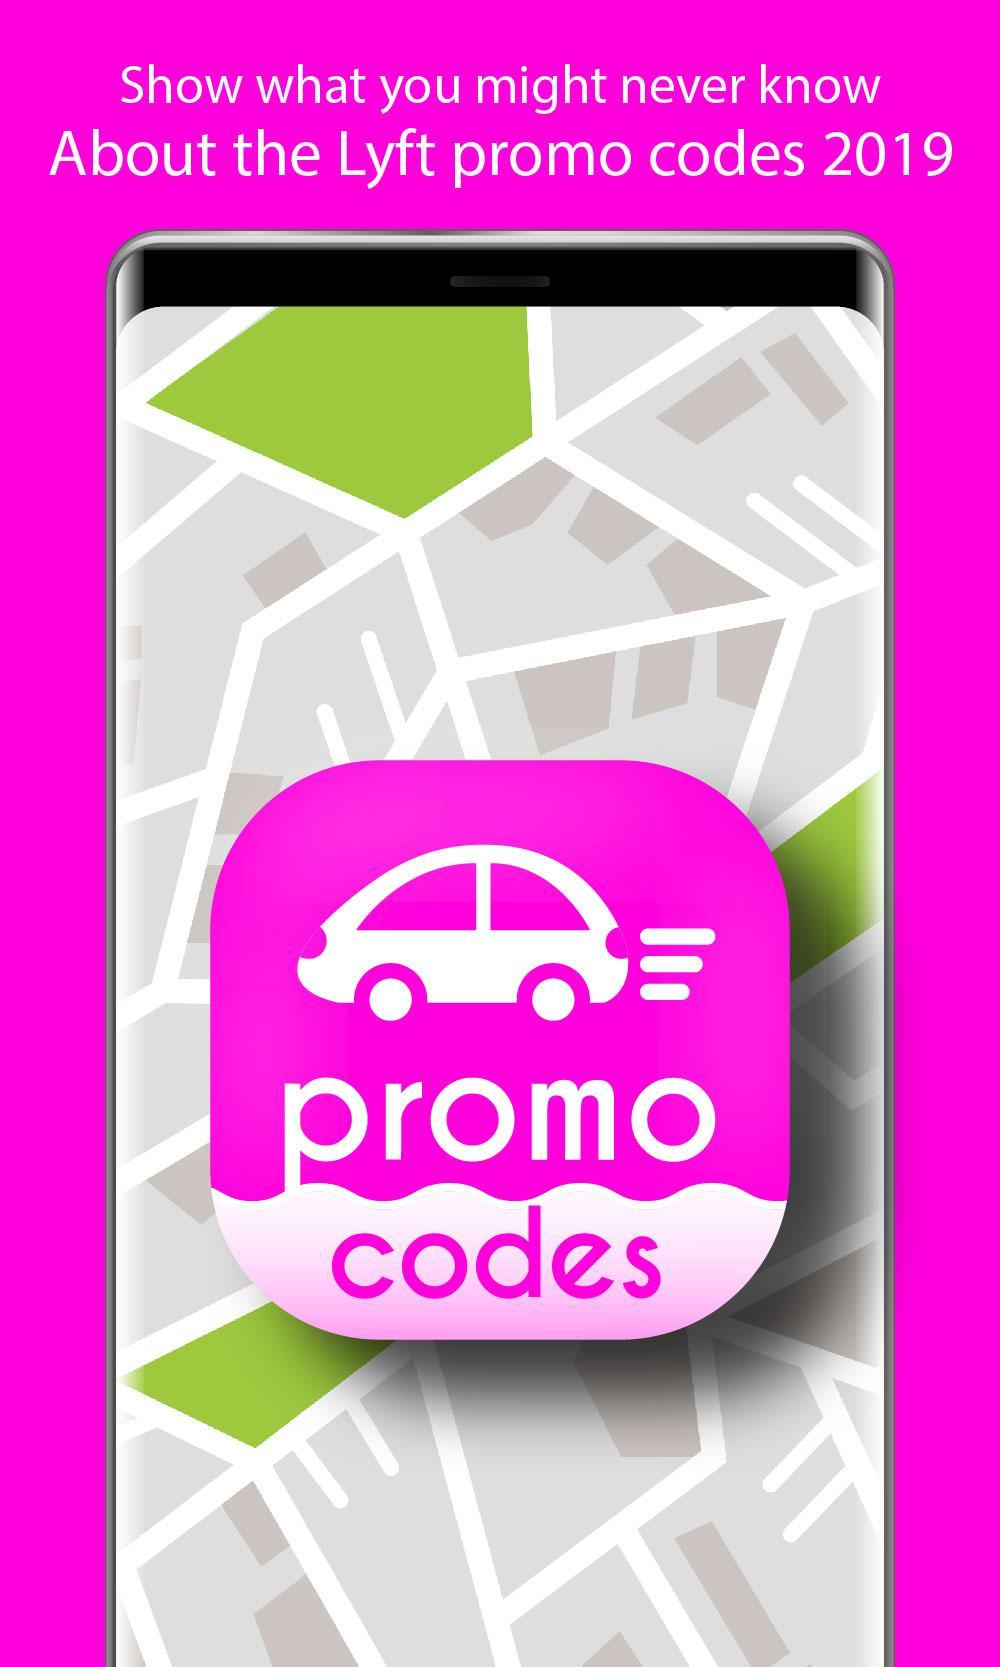 Free Taxi Promo Codes Guide for Android - APK Download